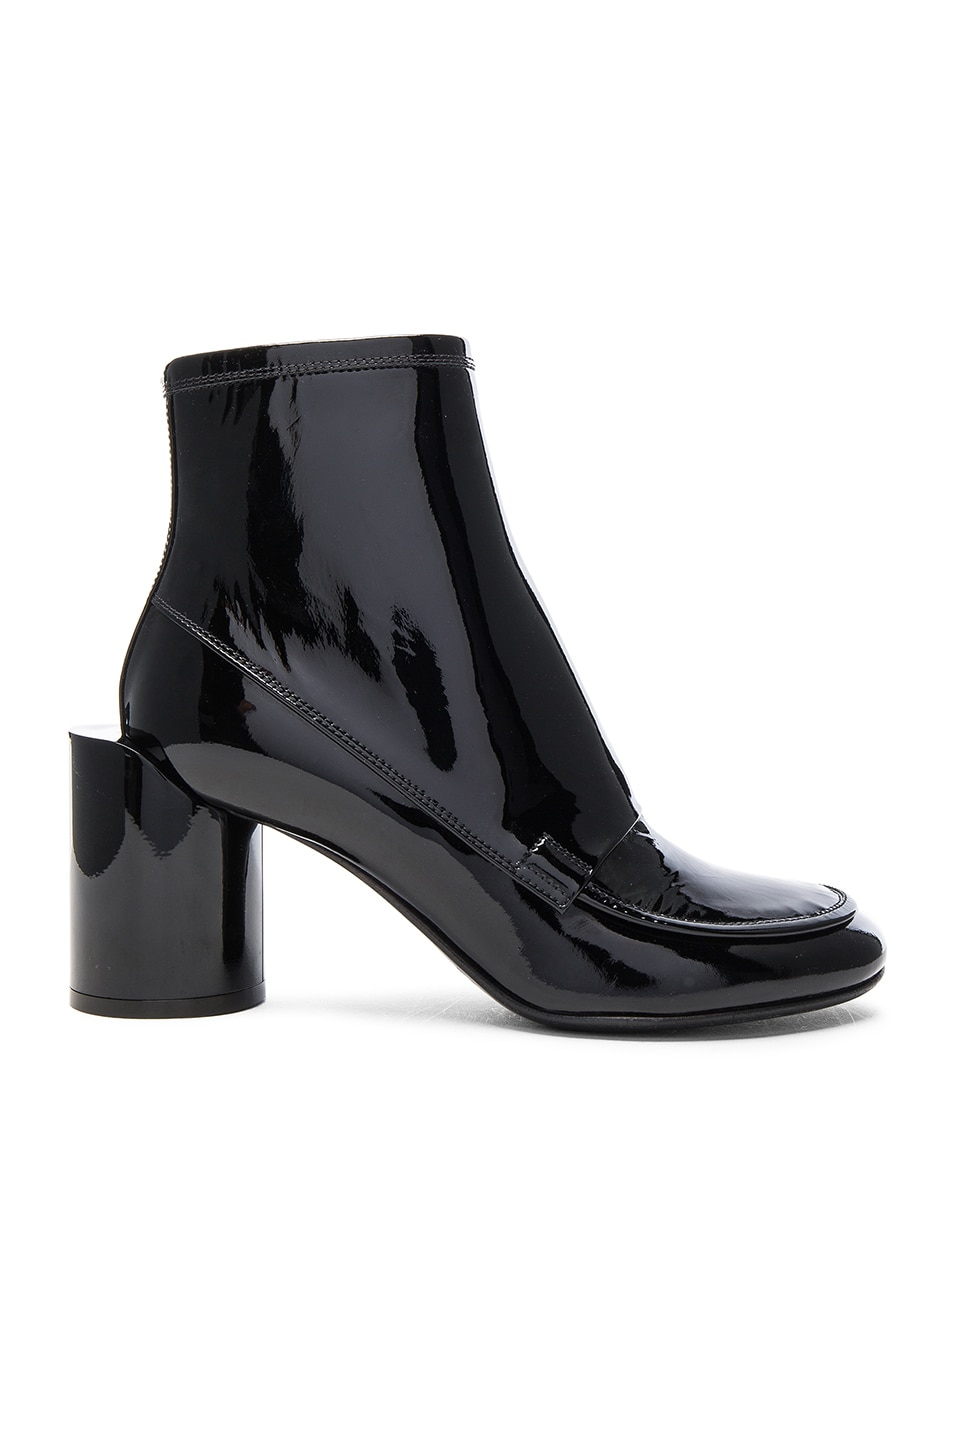 Image 1 of Maison Margiela Patent Leather Booties in Black